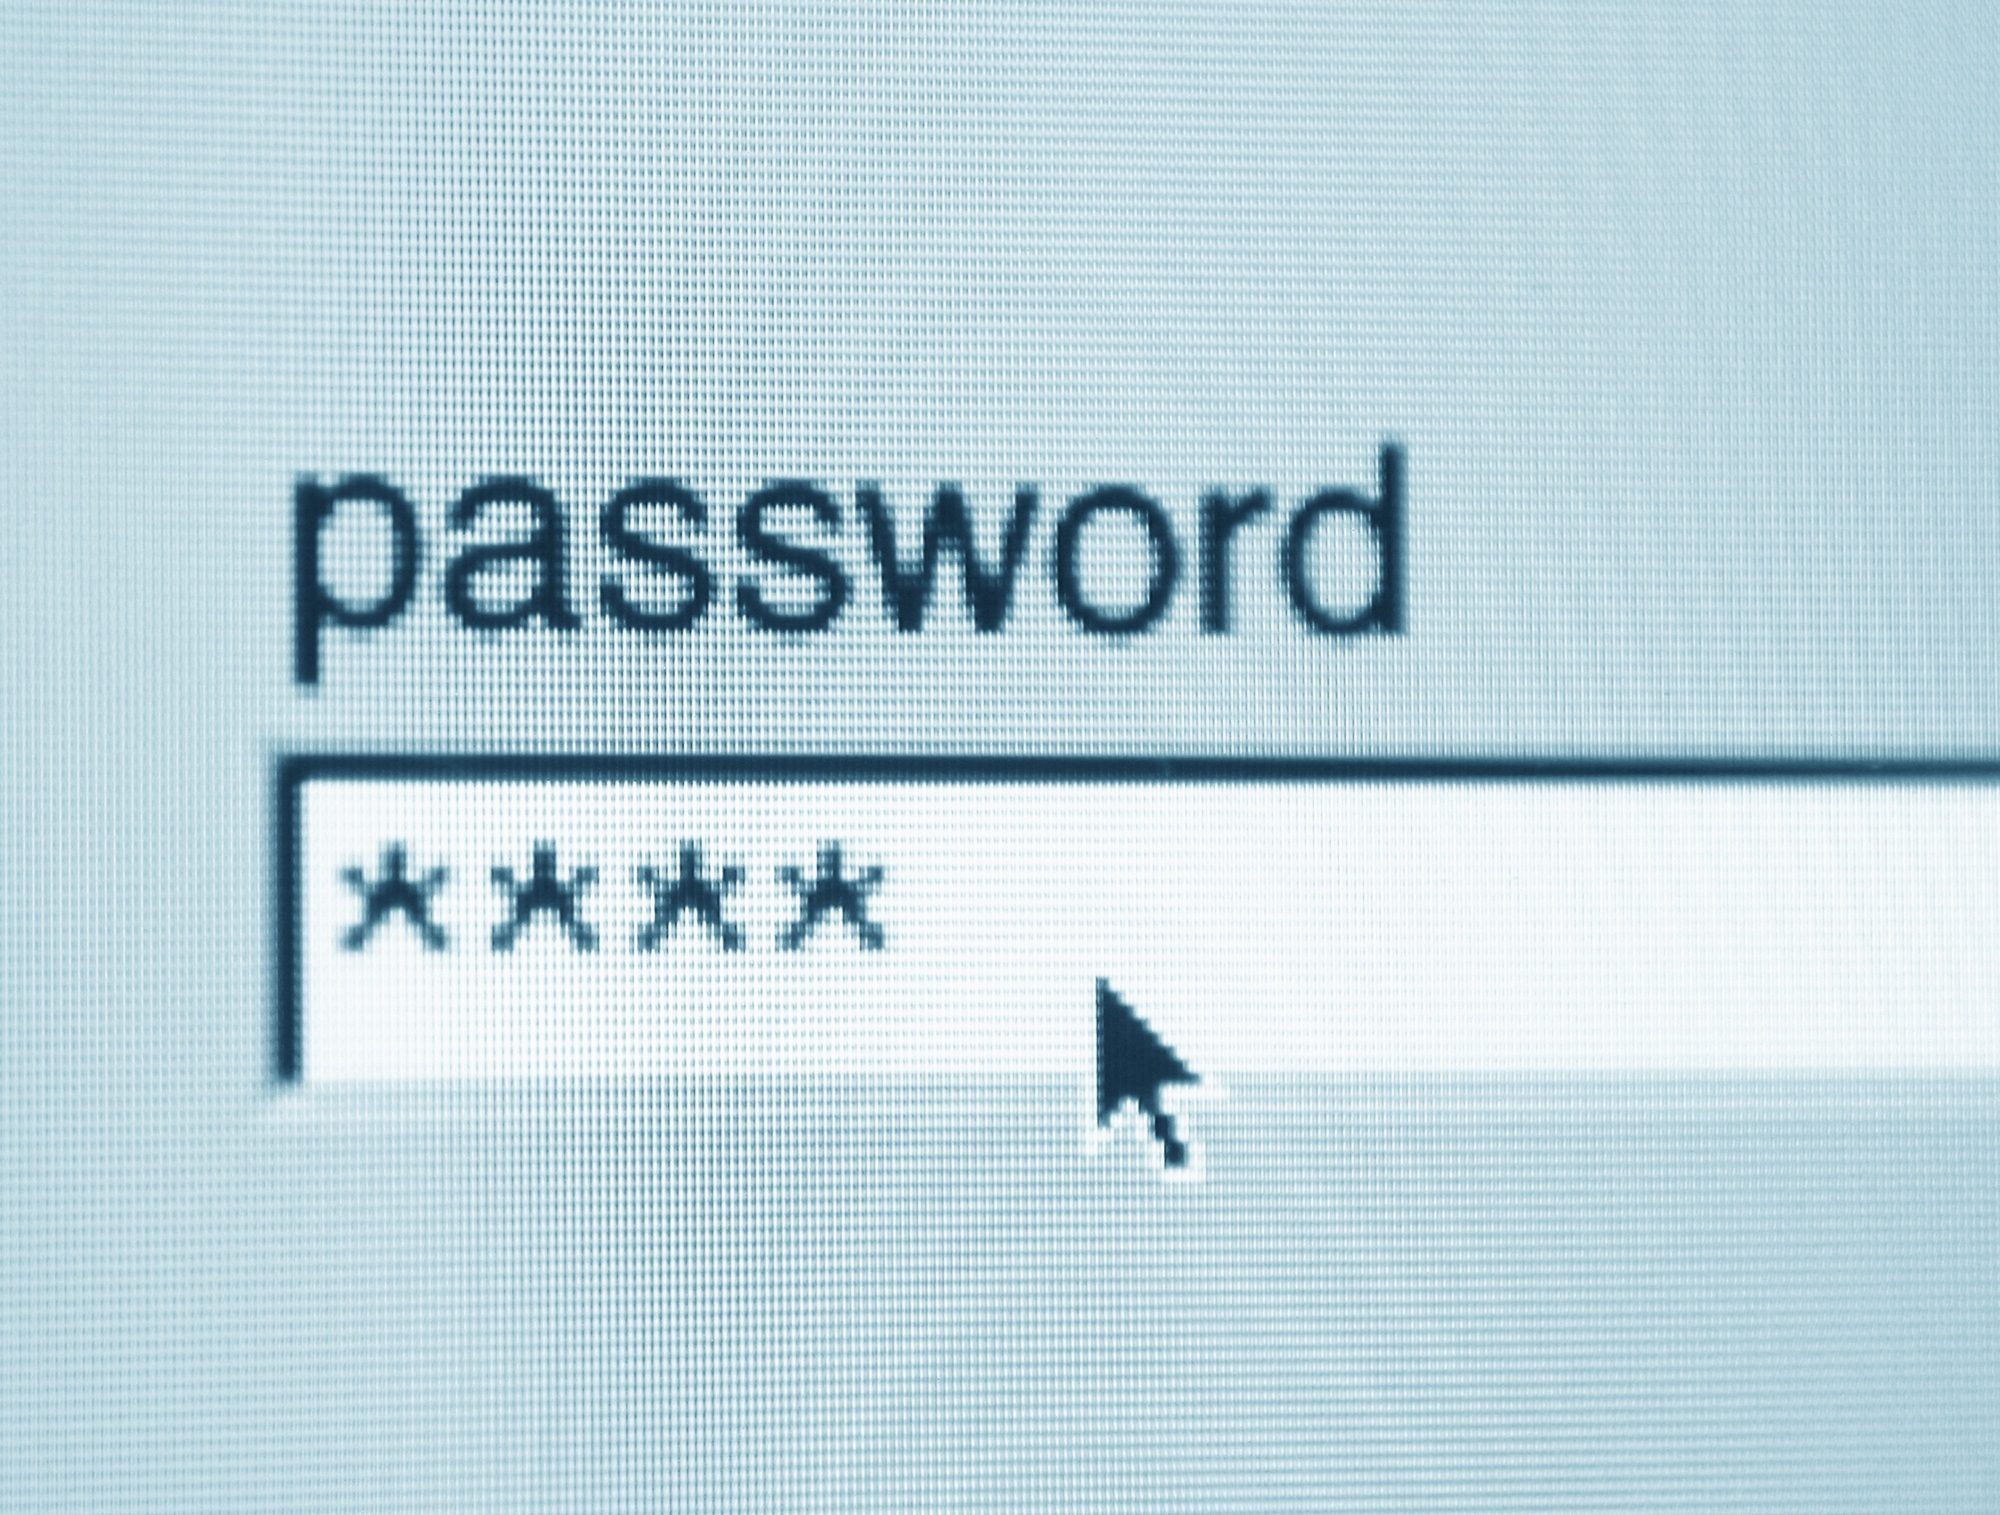 The 25 Worst Passwords You Should Never Use